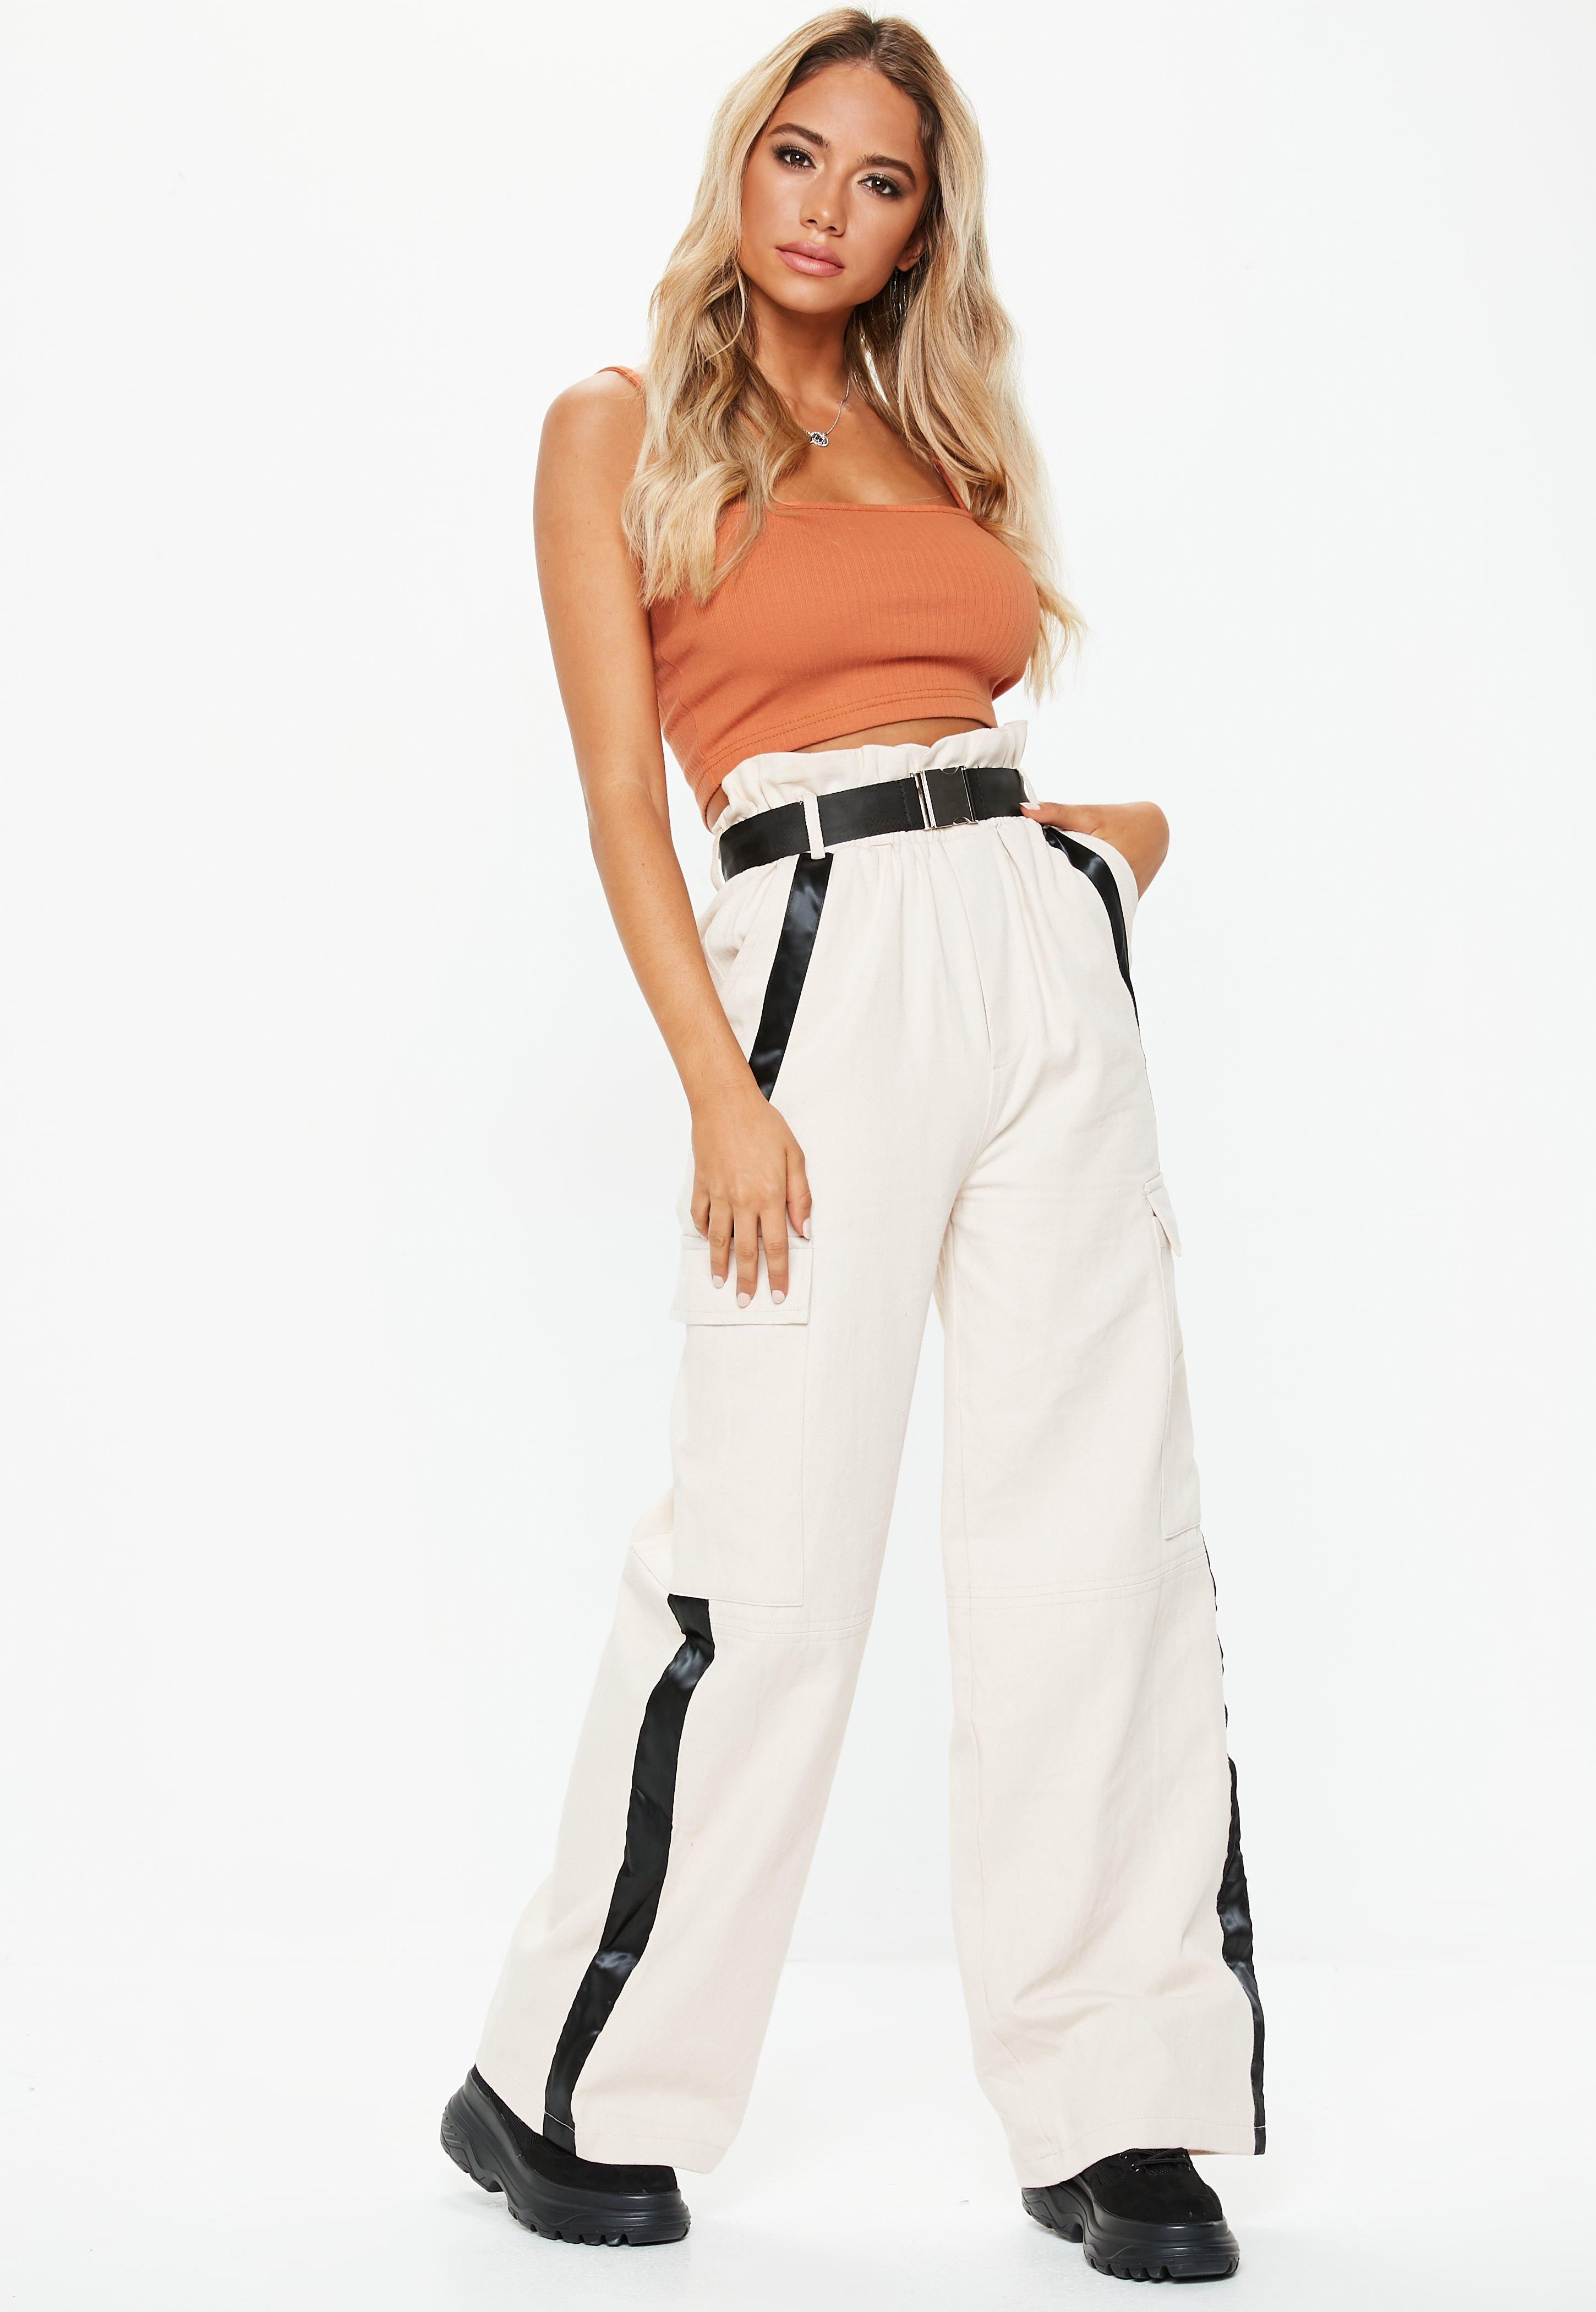 418084c81ea Missguided Rust Straight Neck Strappy Crop Top - Lyst